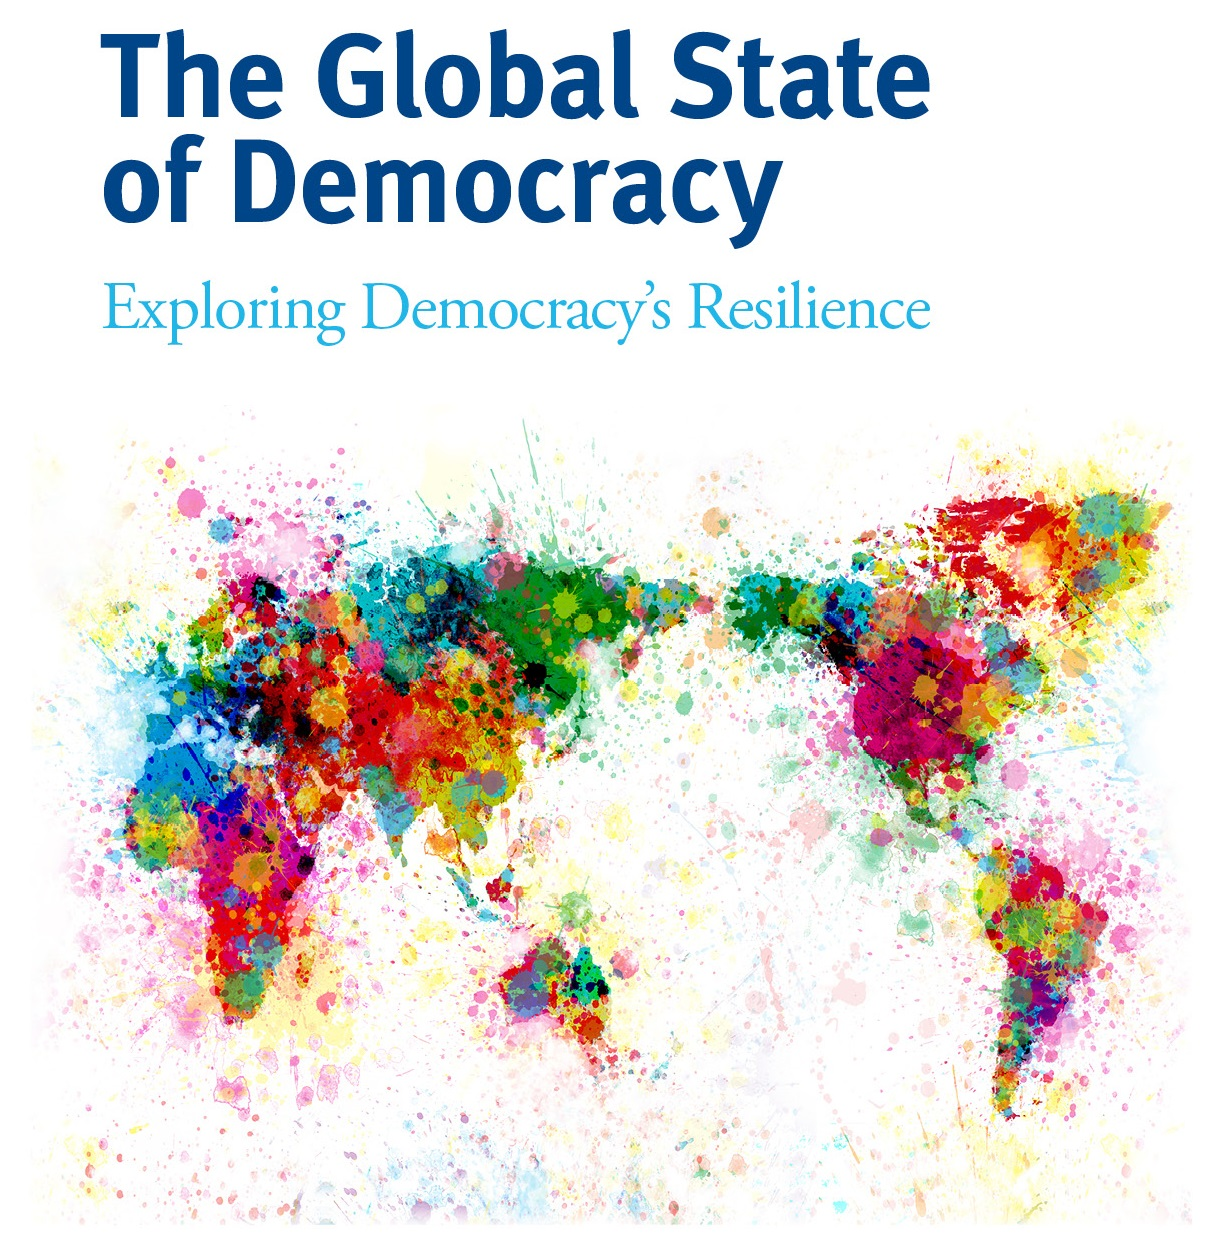 democracy at a crossroads according to new international idea